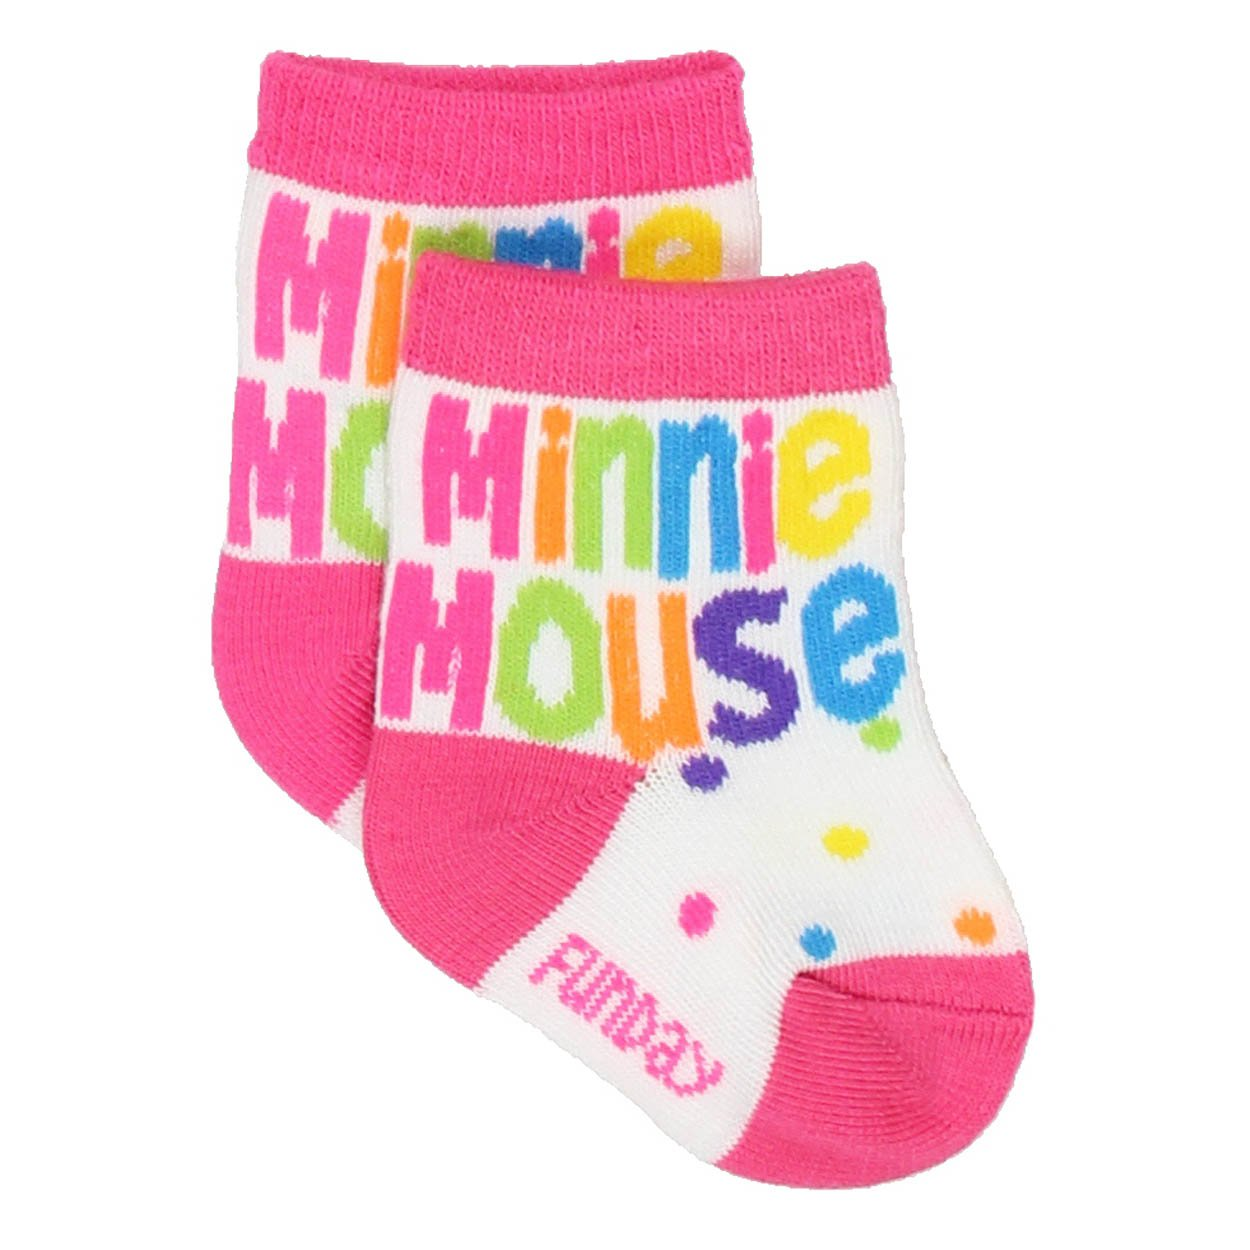 Size 6-8, 3 Pairs Disneys Minnie Mouse Assorted Color//Design Kids Socks Set